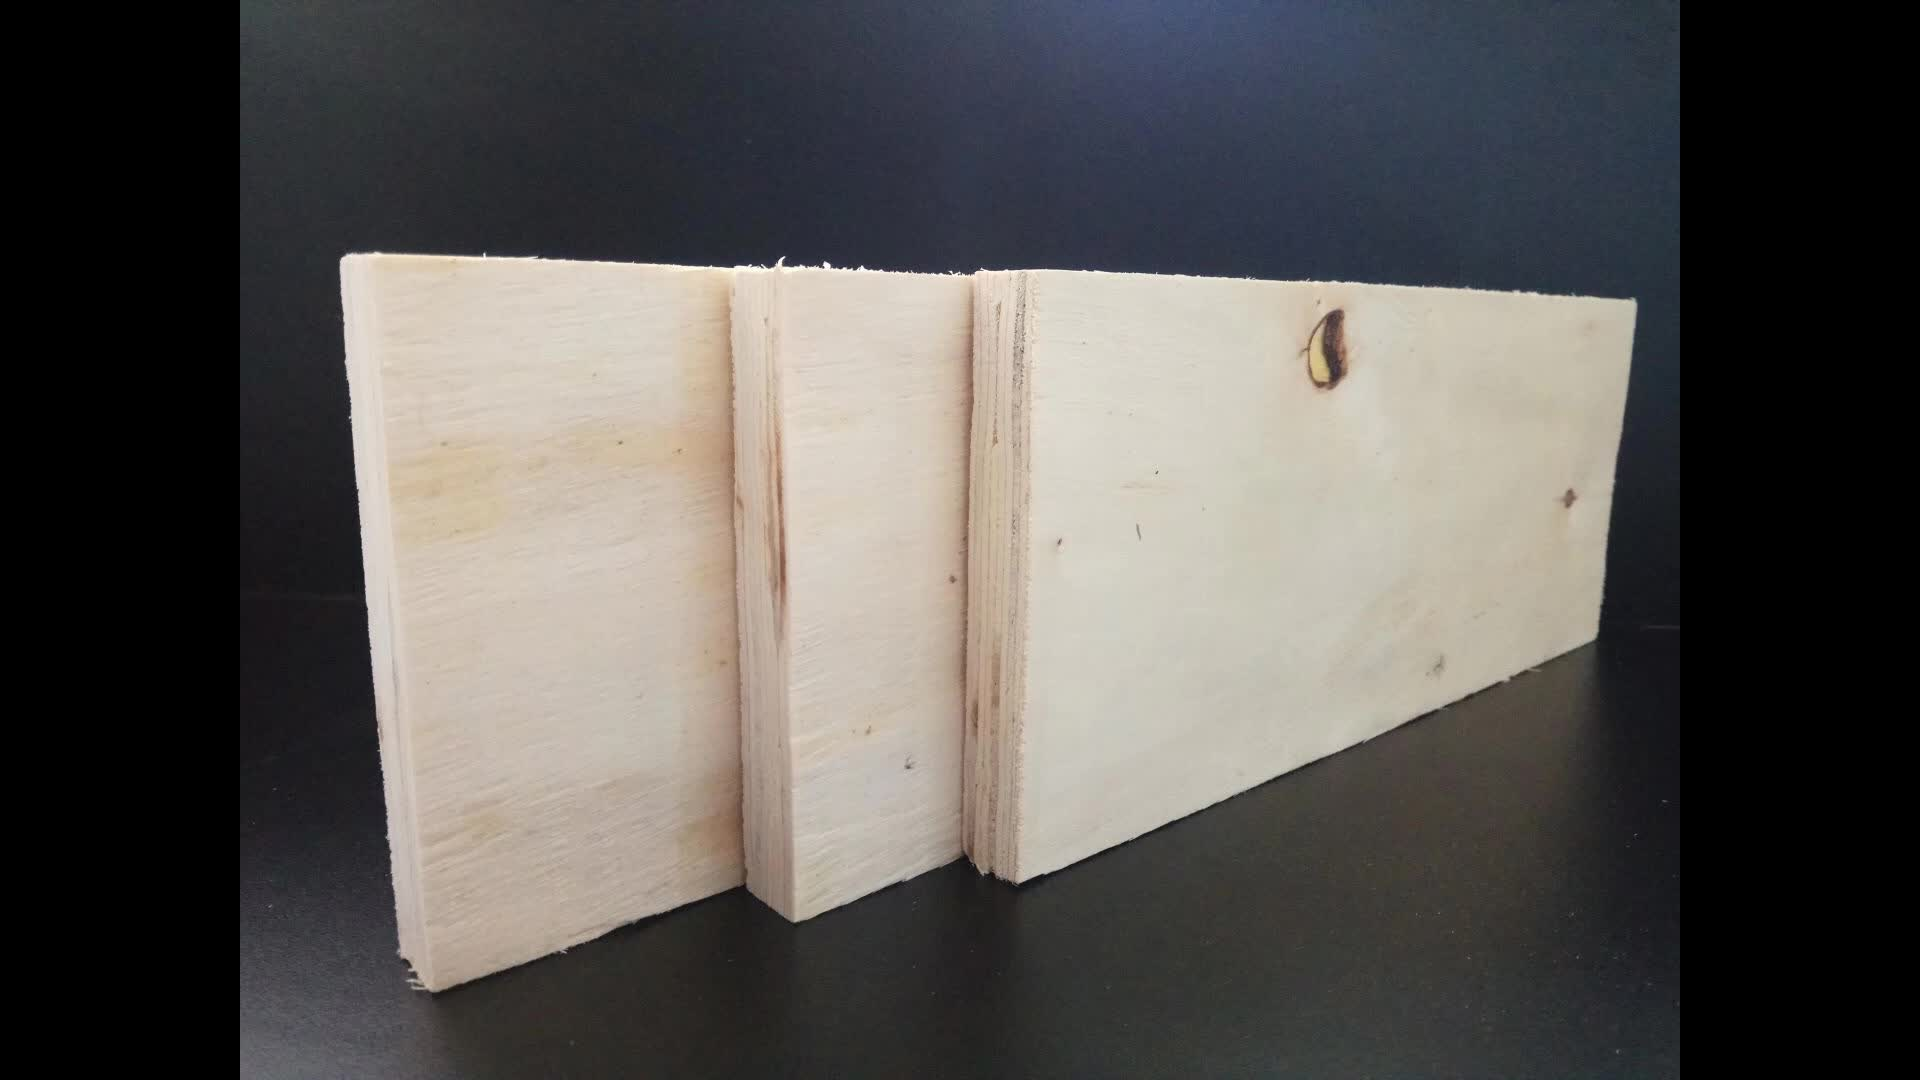 Flexible sizes poplar wooden packing  lvl timber for pallets prices